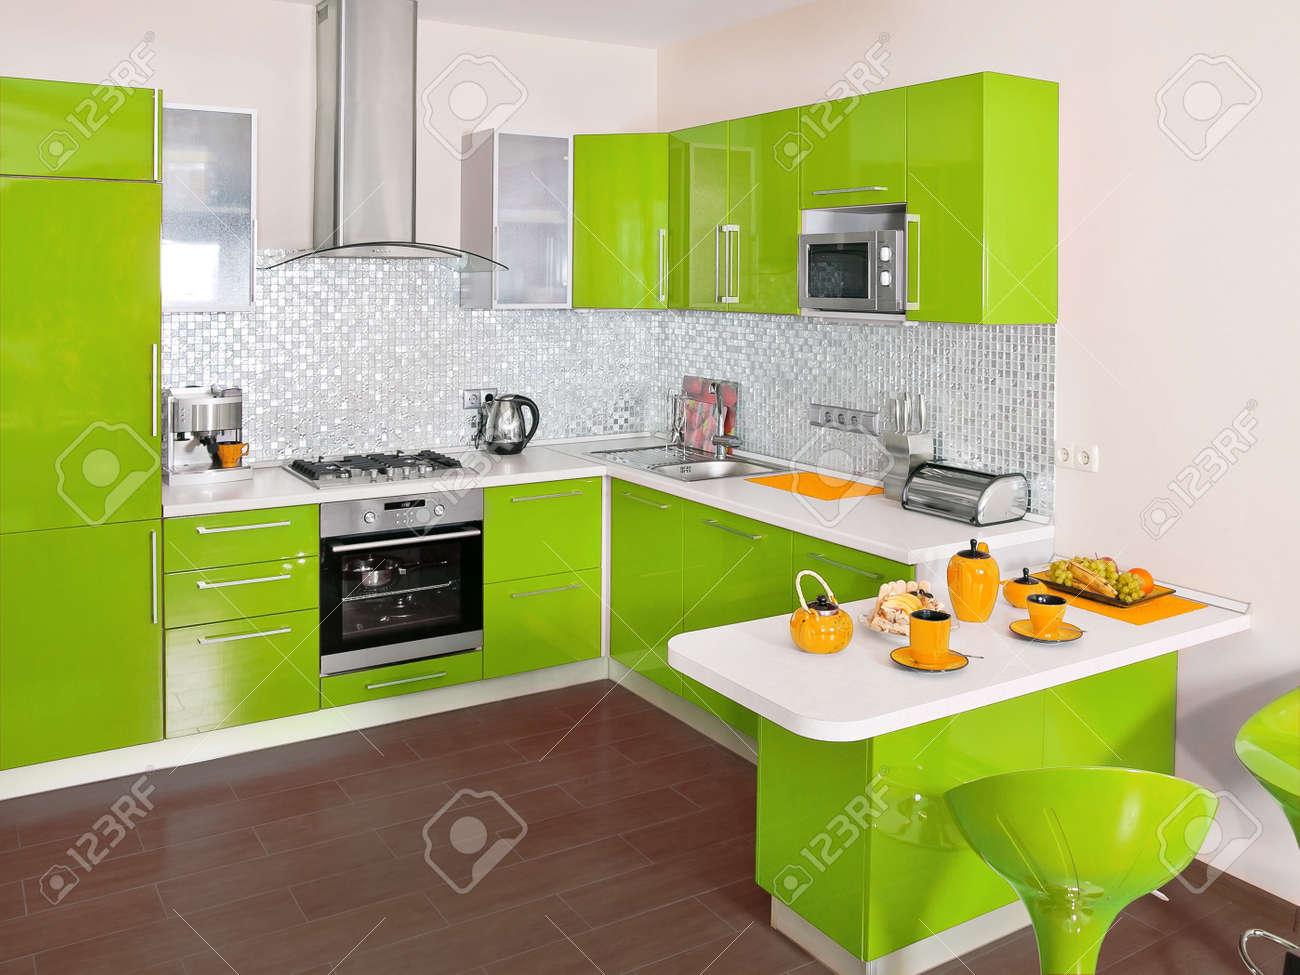 Modern Kitchen Interior With Green Decoration Stock Photo, Picture ...